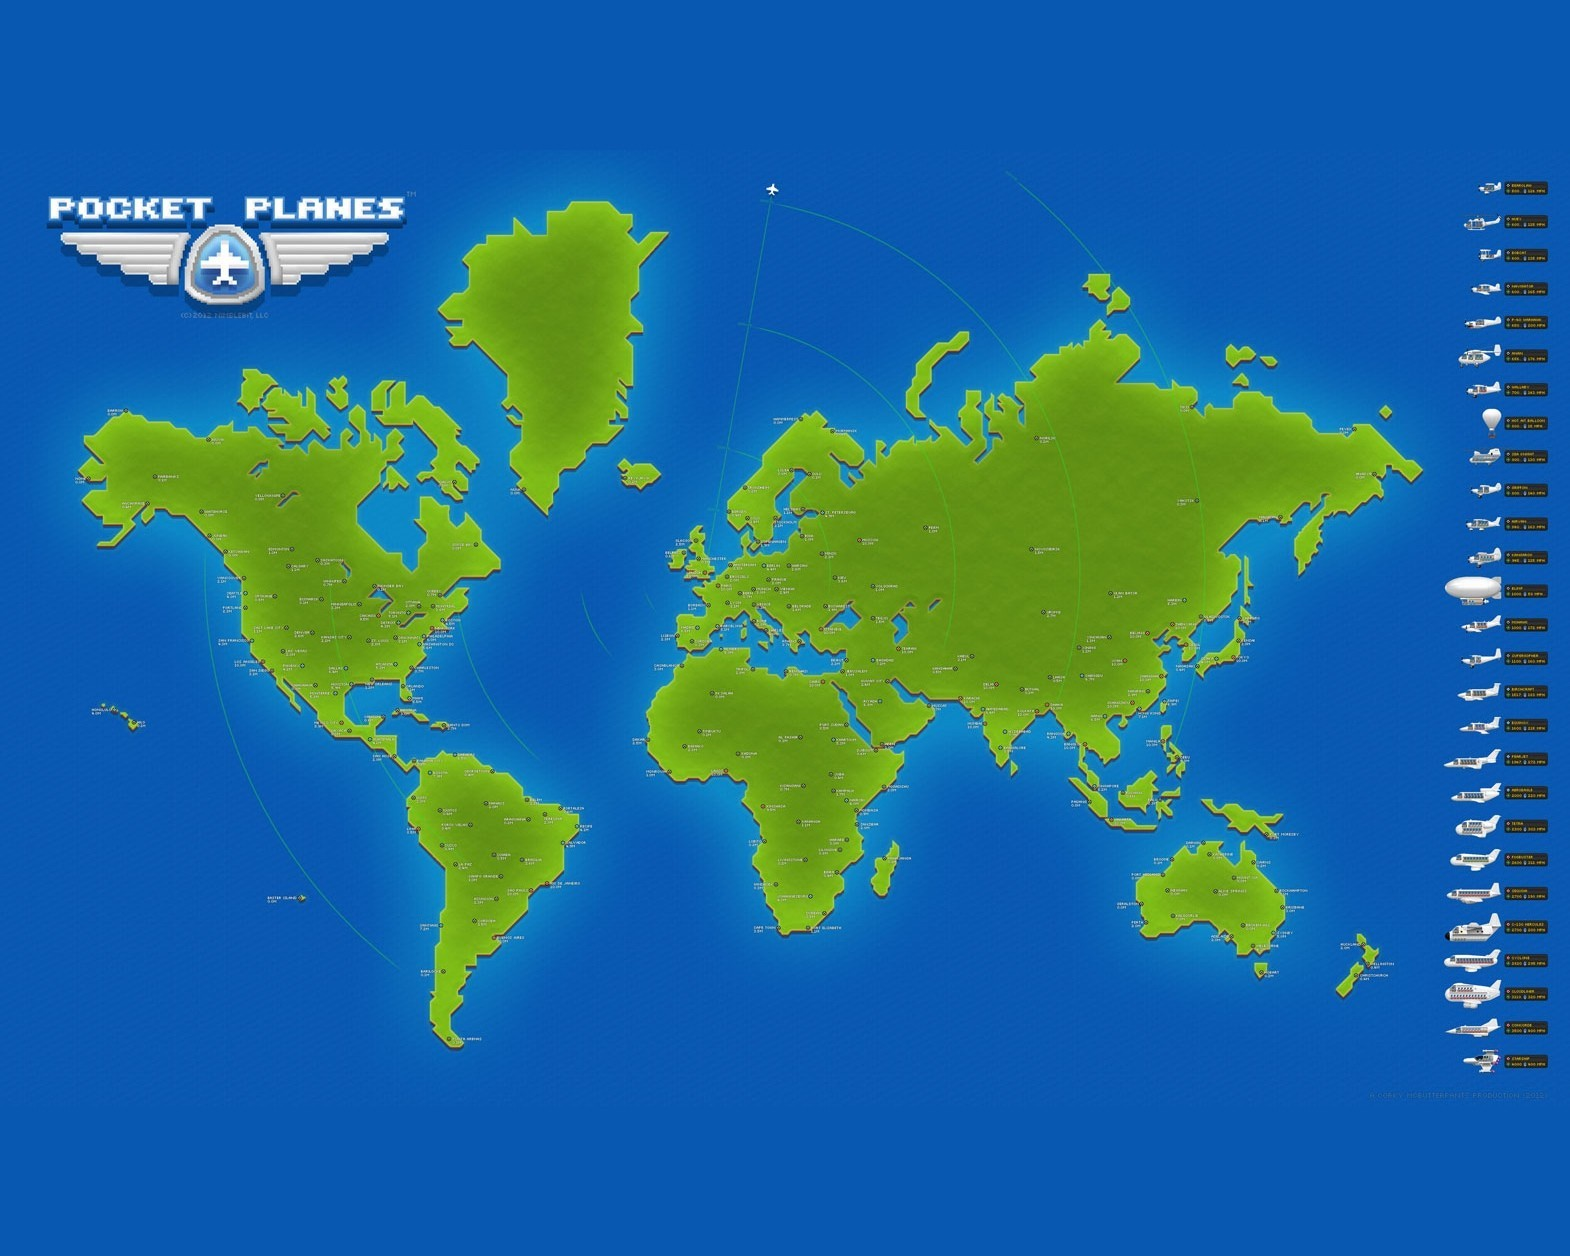 Video games maps iphone world map pocket planes wallpaper video games maps iphone world map pocket planes wallpaper gumiabroncs Image collections